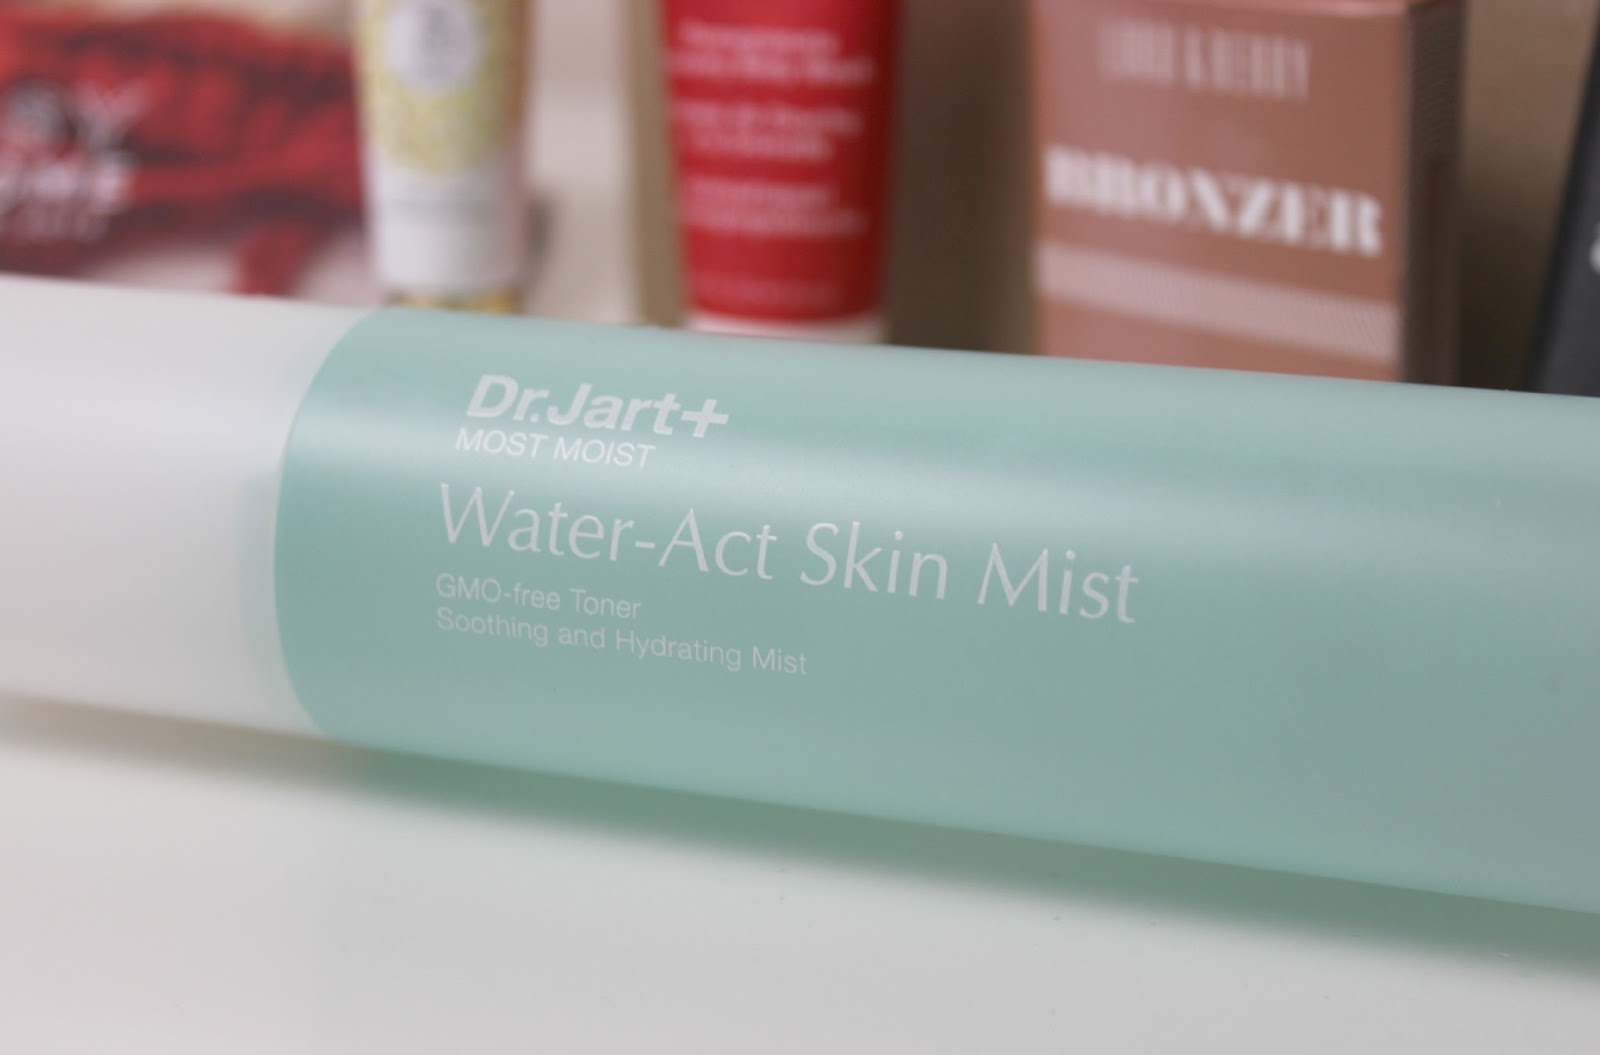 A picture of the Dr. Jart+ Most Moist Water-Act Skin Must